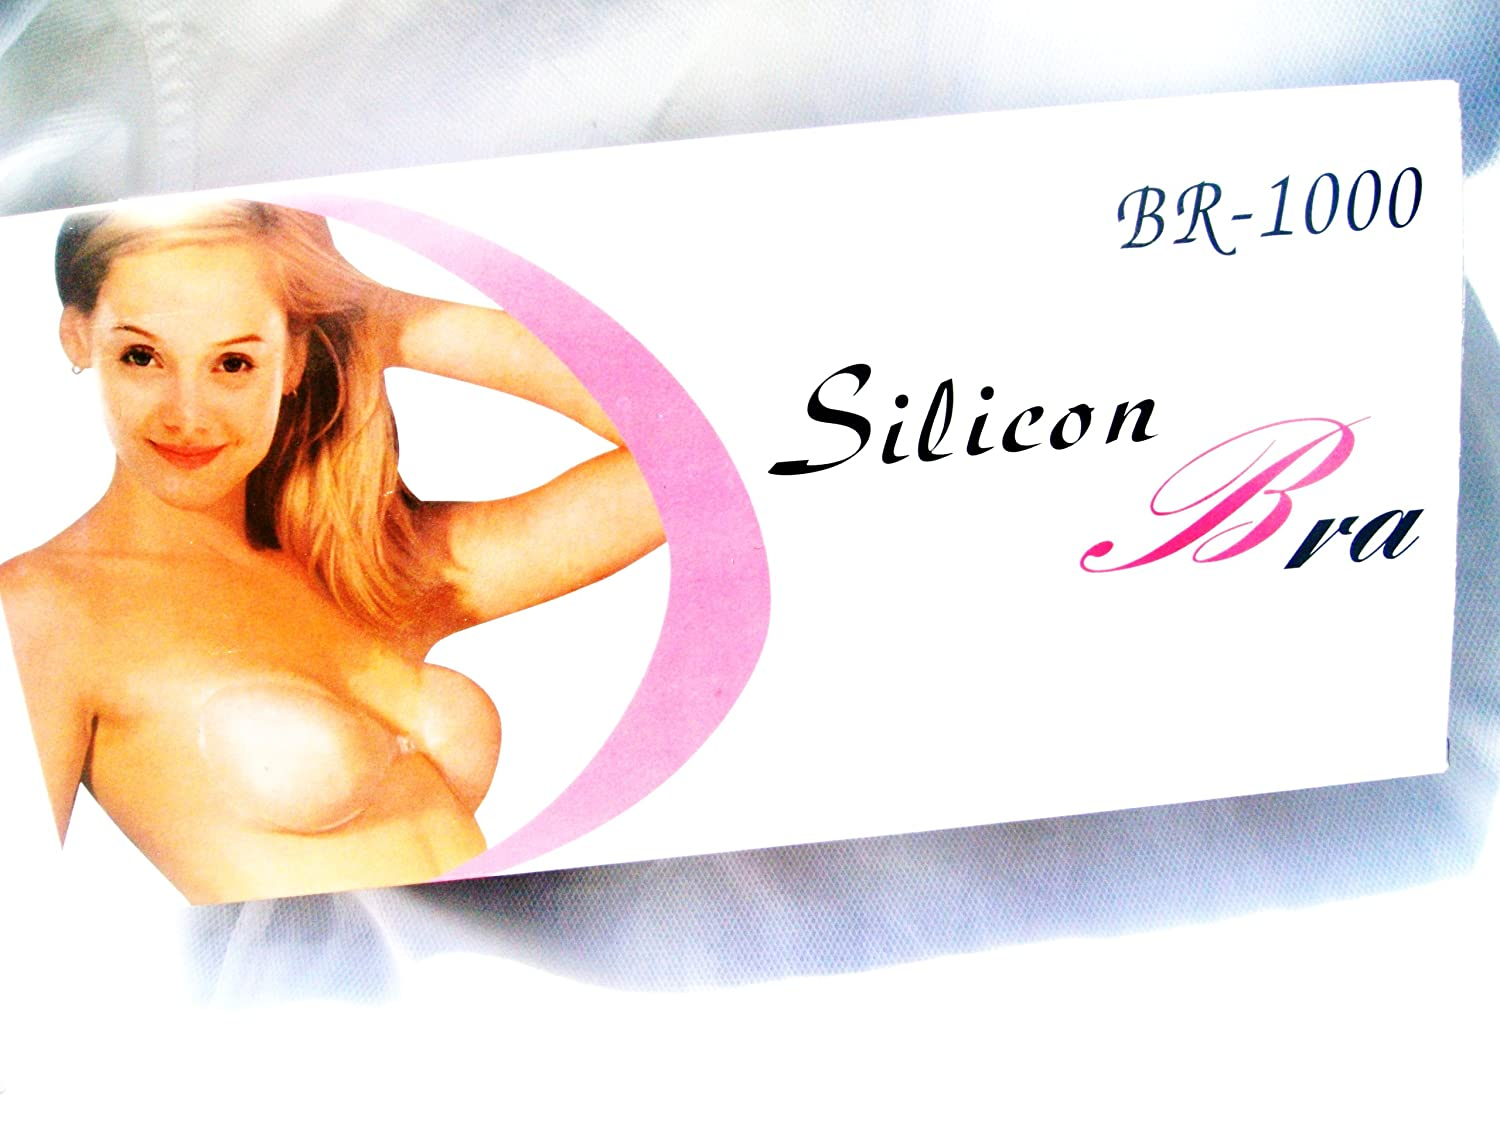 Backless & Strapless Silicone Adhesive Bra